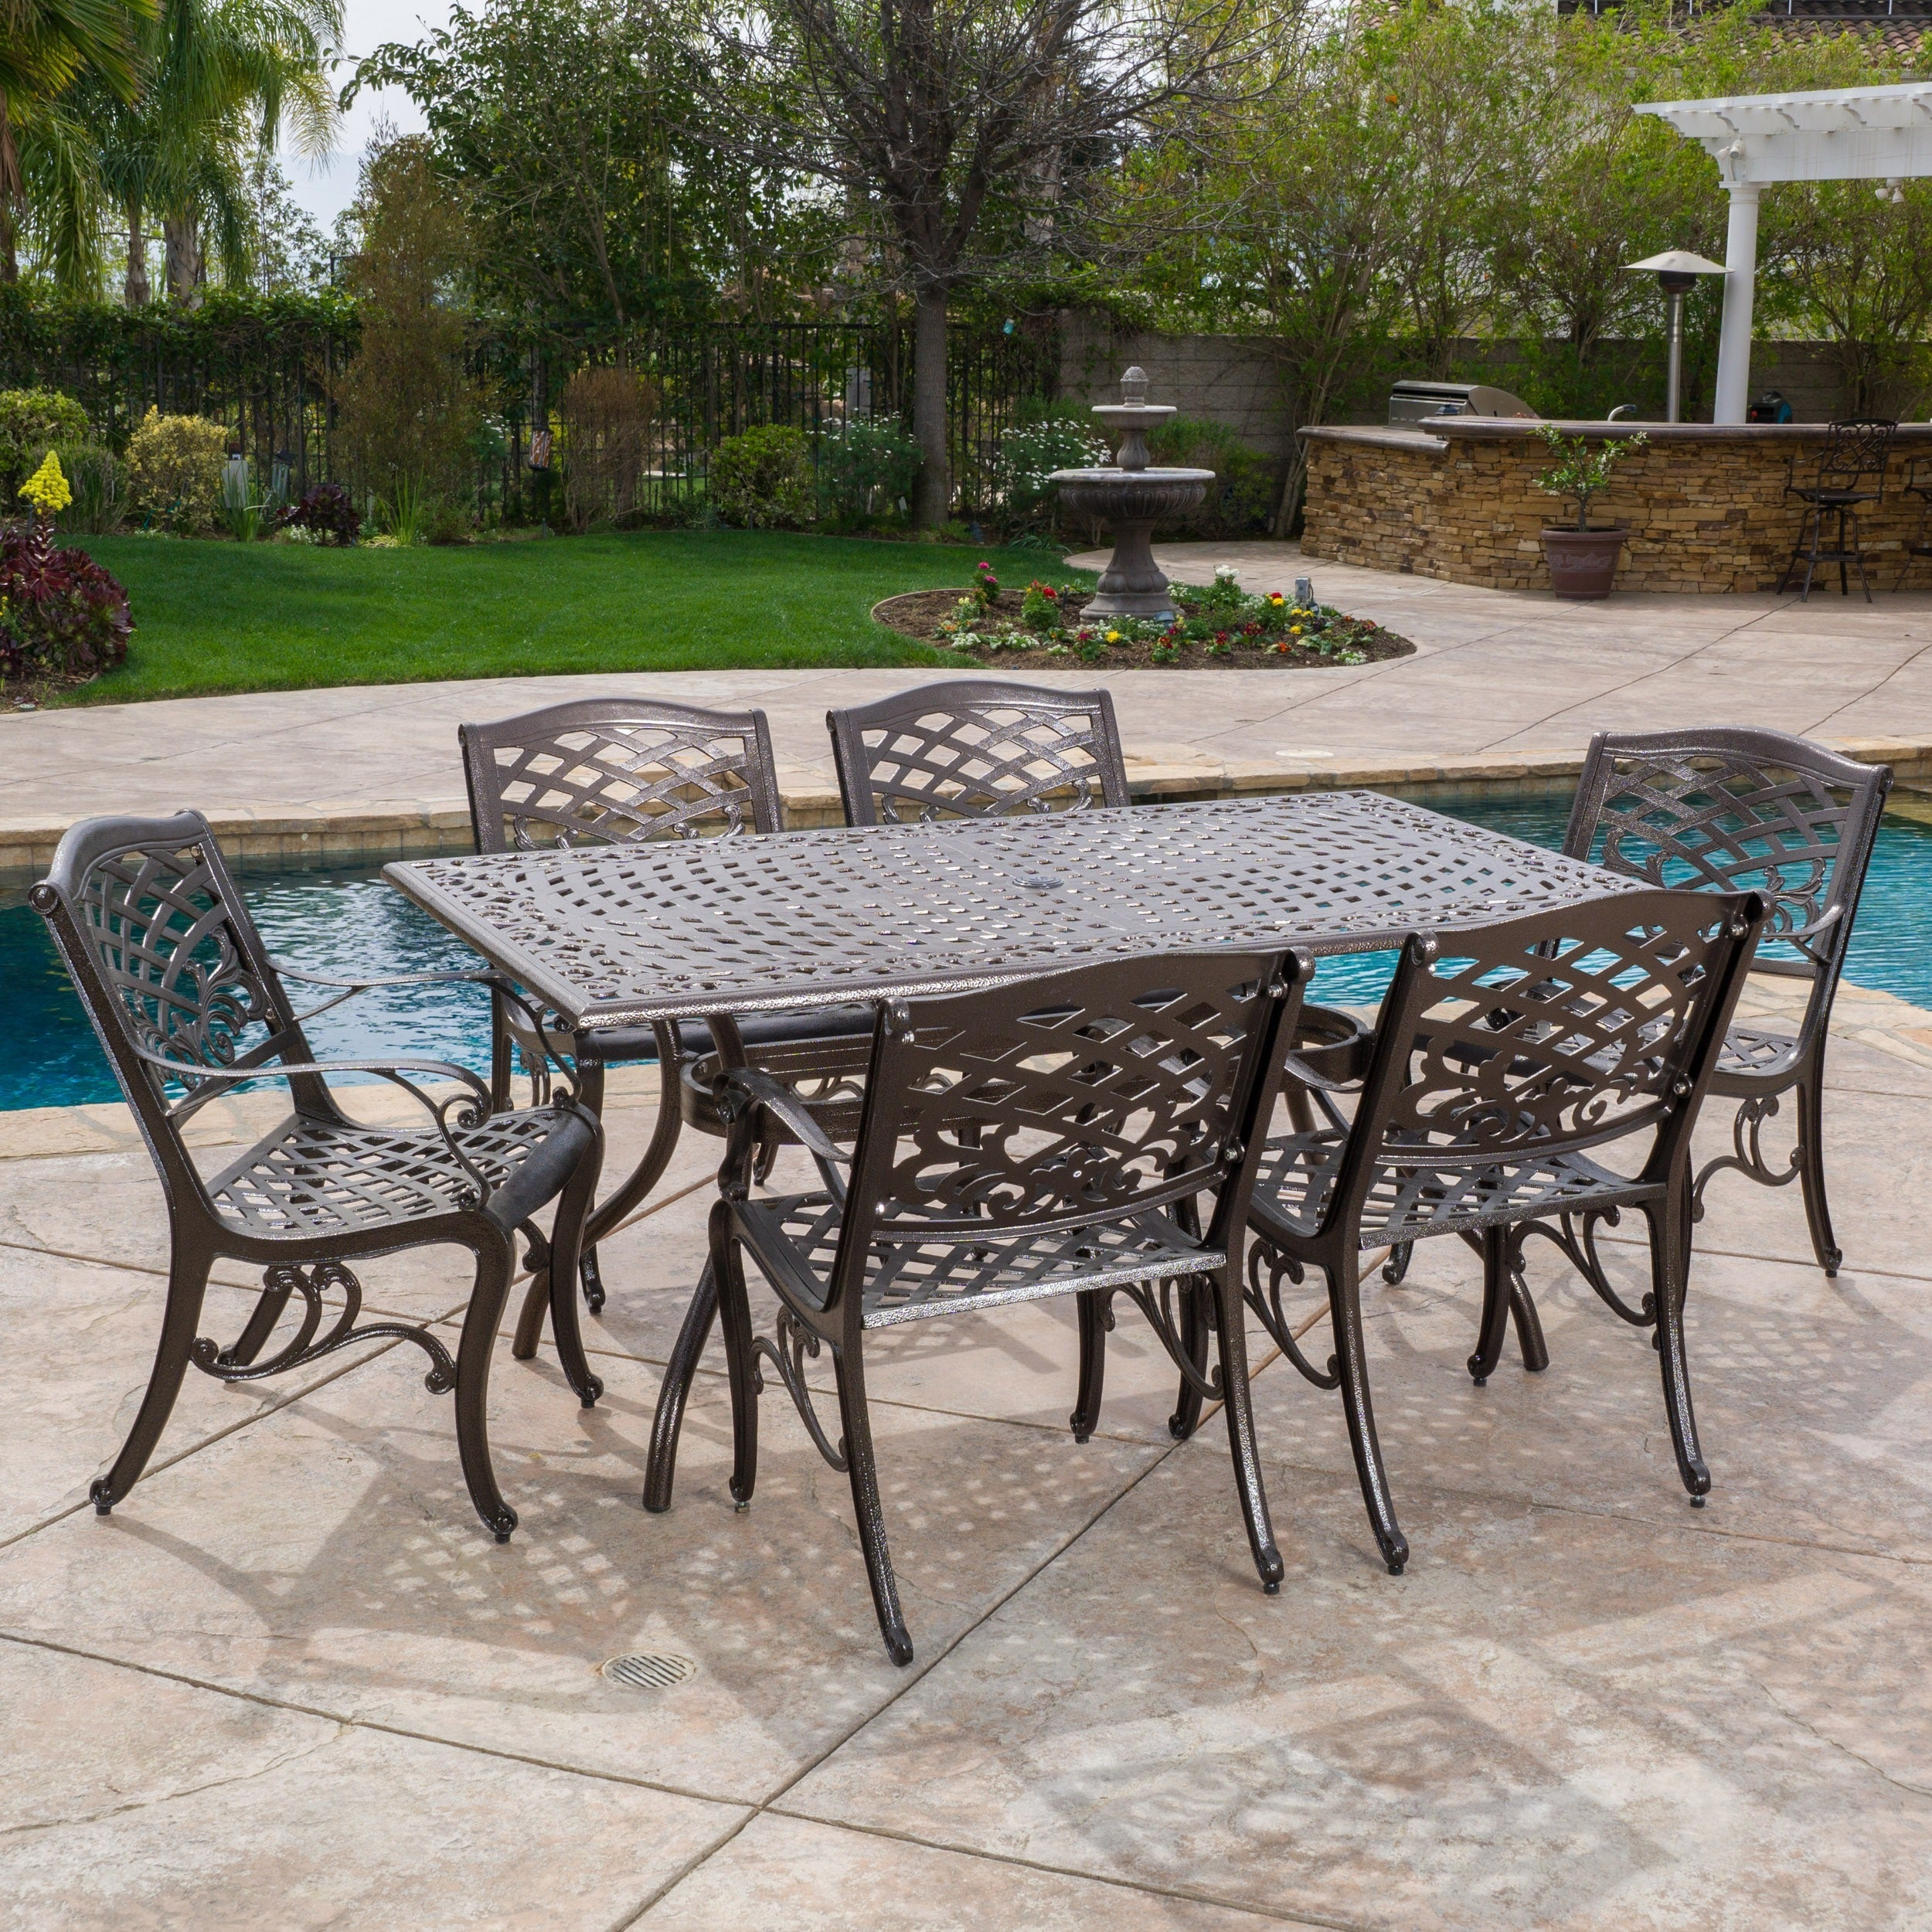 Christopher Knight Home Outdoor Hallandale 7 Piece Cast Aluminum Rectangle Bronze Dining Set